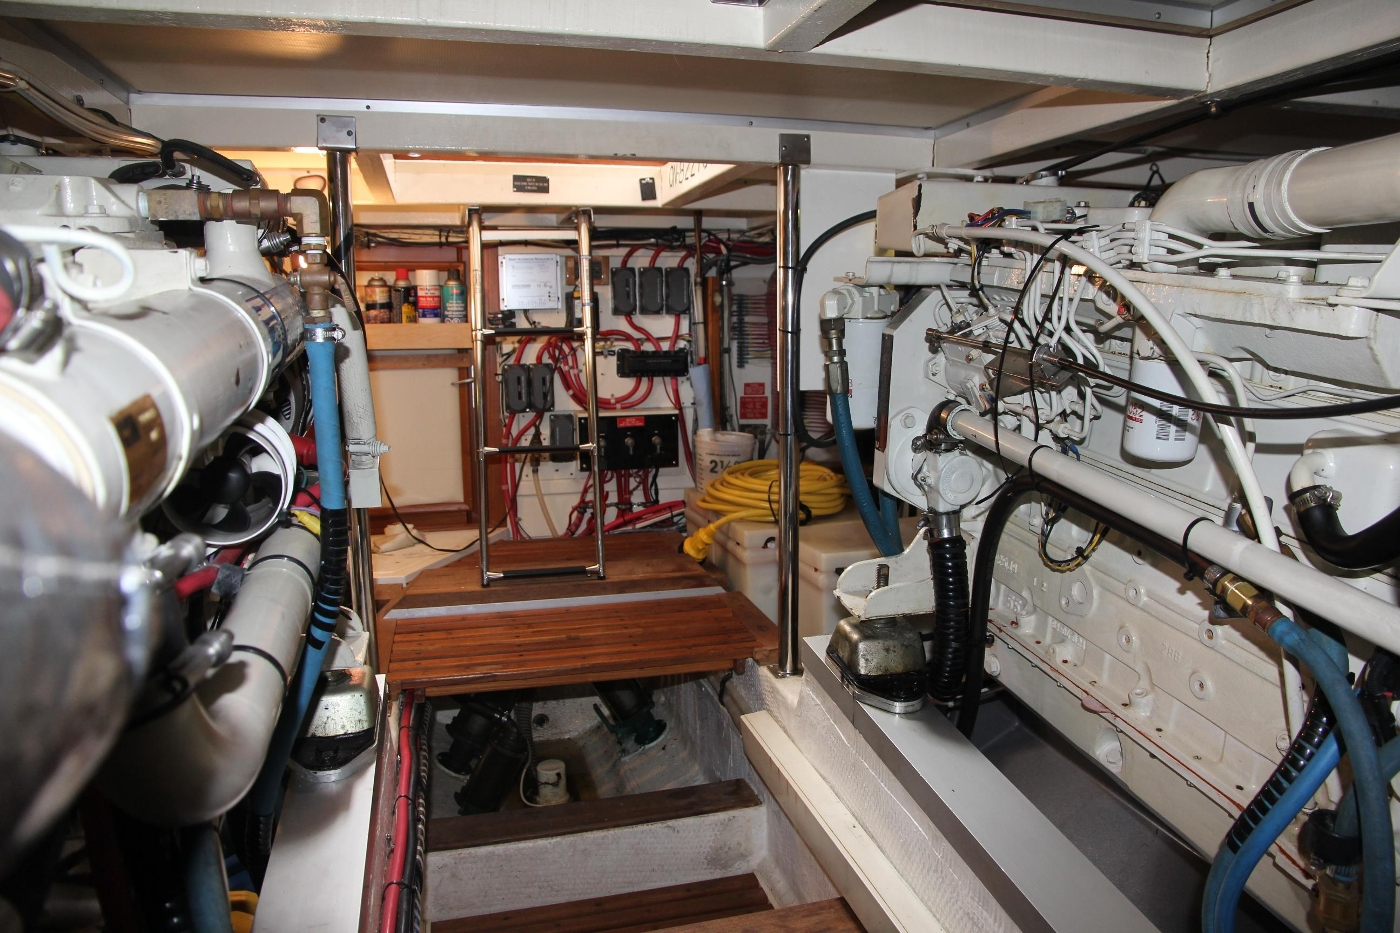 2001 Grand Banks 42 Classic, Engine Room Looking Forward